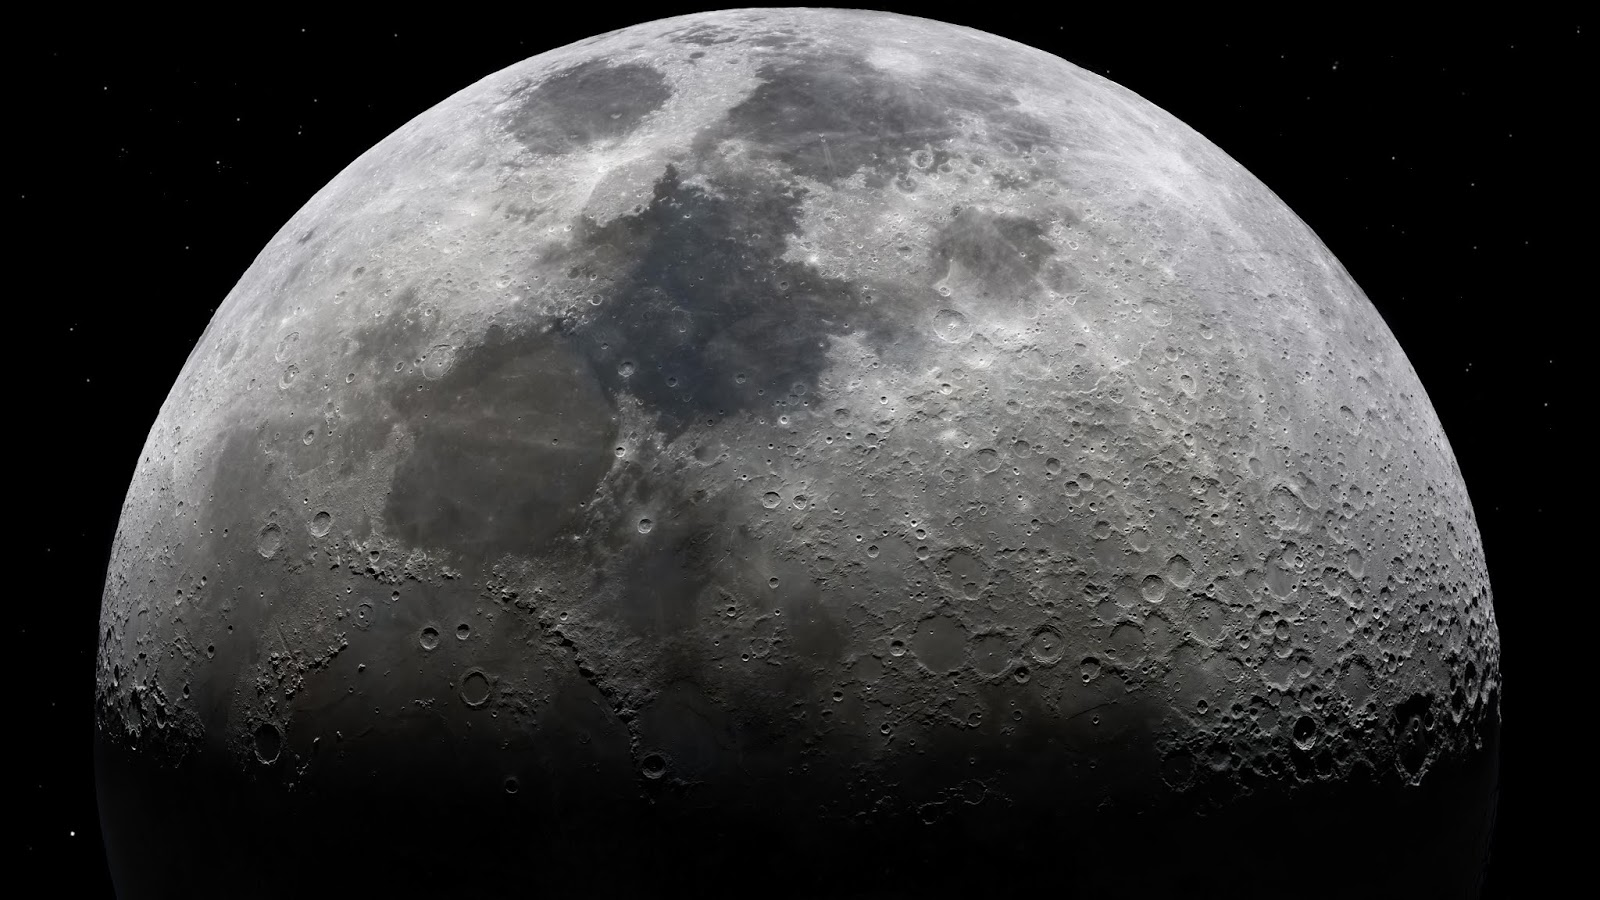 MOONSTROSITY™ ein 8K Mond-Foto von Andrew James McCarthy | Wallpaper Galore